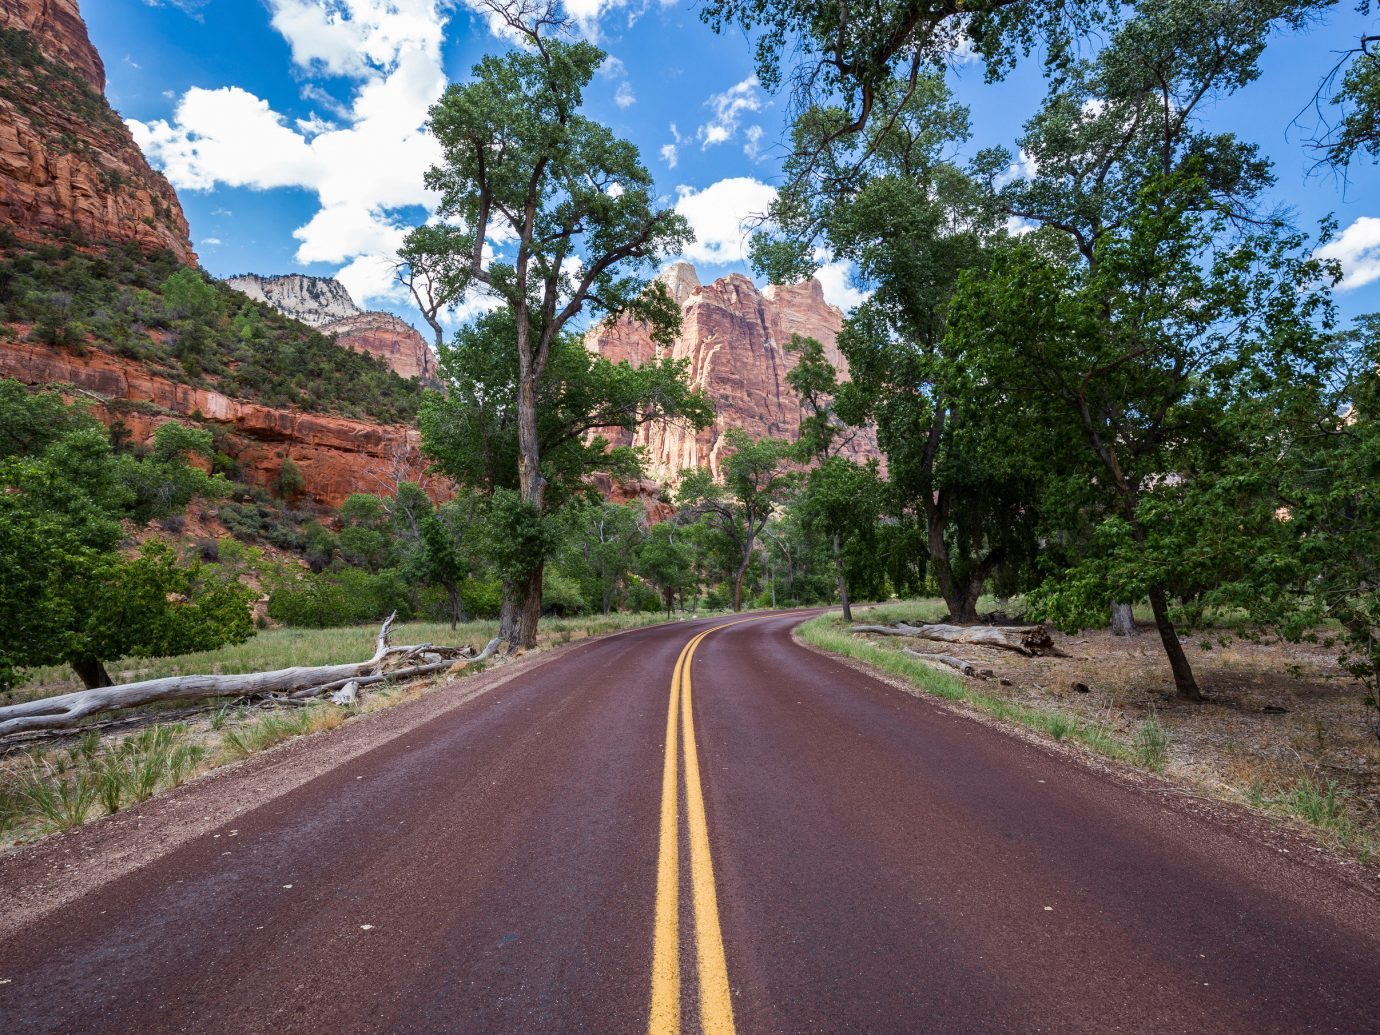 National Parks Outdoors + Adventure Trip Ideas tree outdoor road sky way scene plant mountain woody plant rural area infrastructure flower landscape autumn road trip Village empty lined